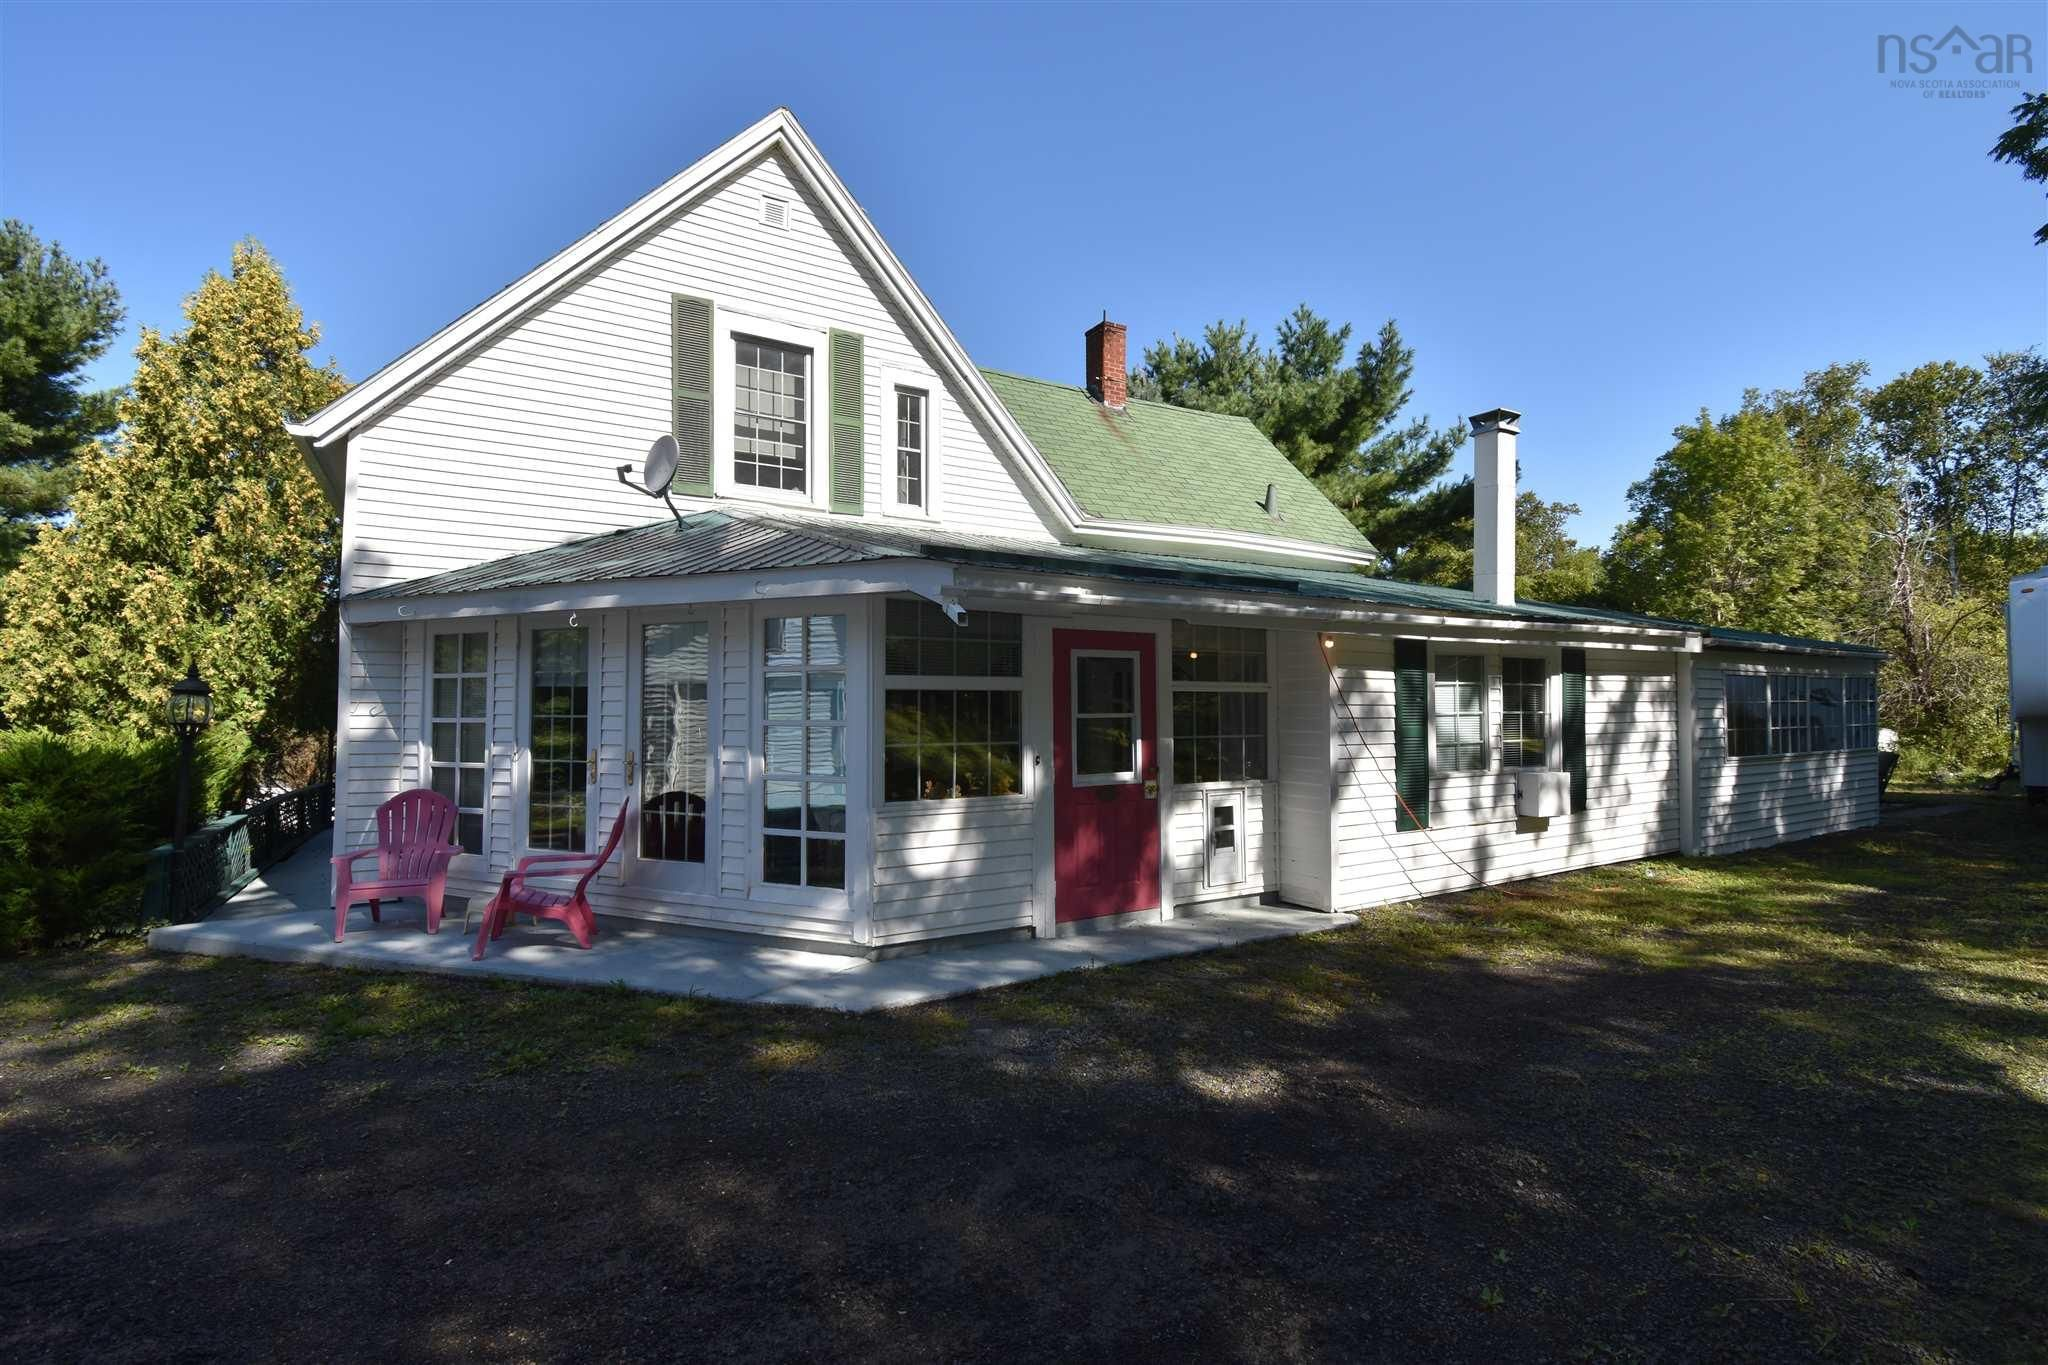 Main Photo: 2526 HIGHWAY 1 in Upper Clements: 400-Annapolis County Residential for sale (Annapolis Valley)  : MLS®# 202123009